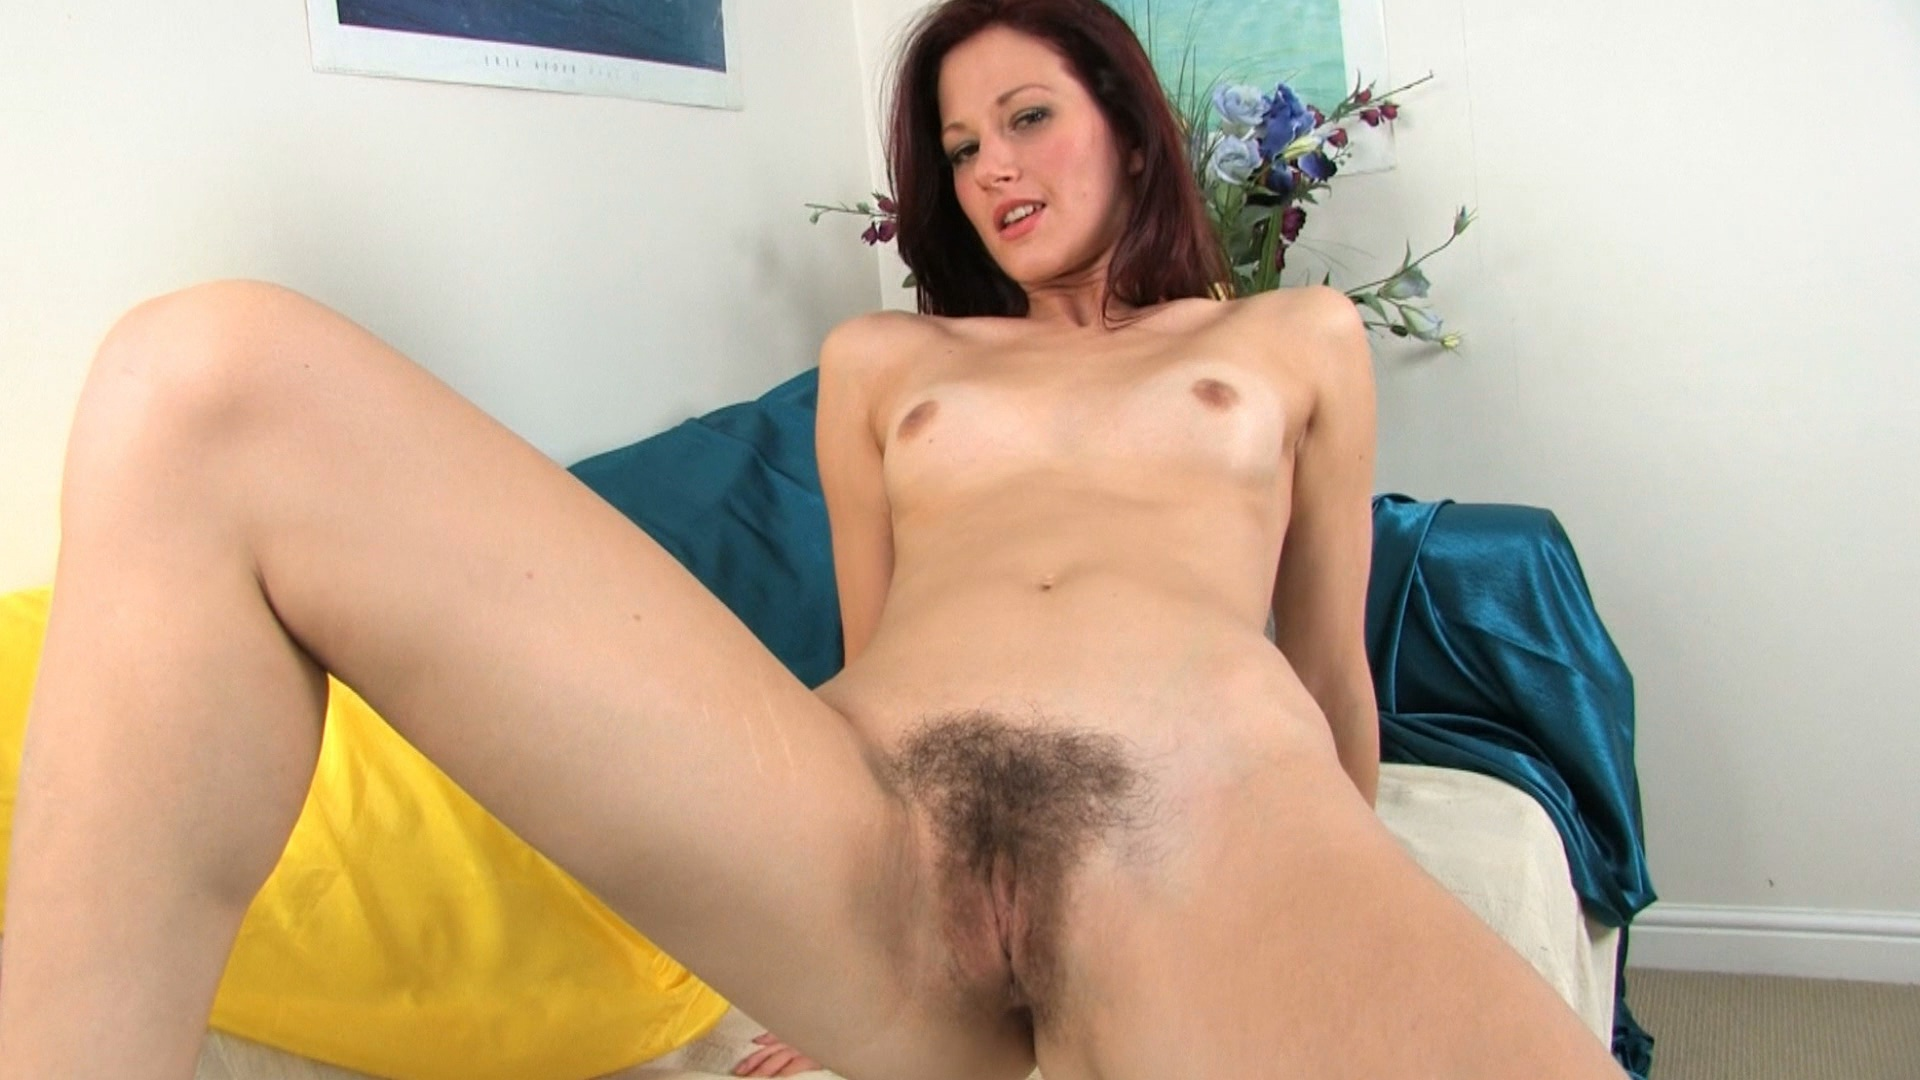 ATK Hairy English Girls 8 xvideos177124